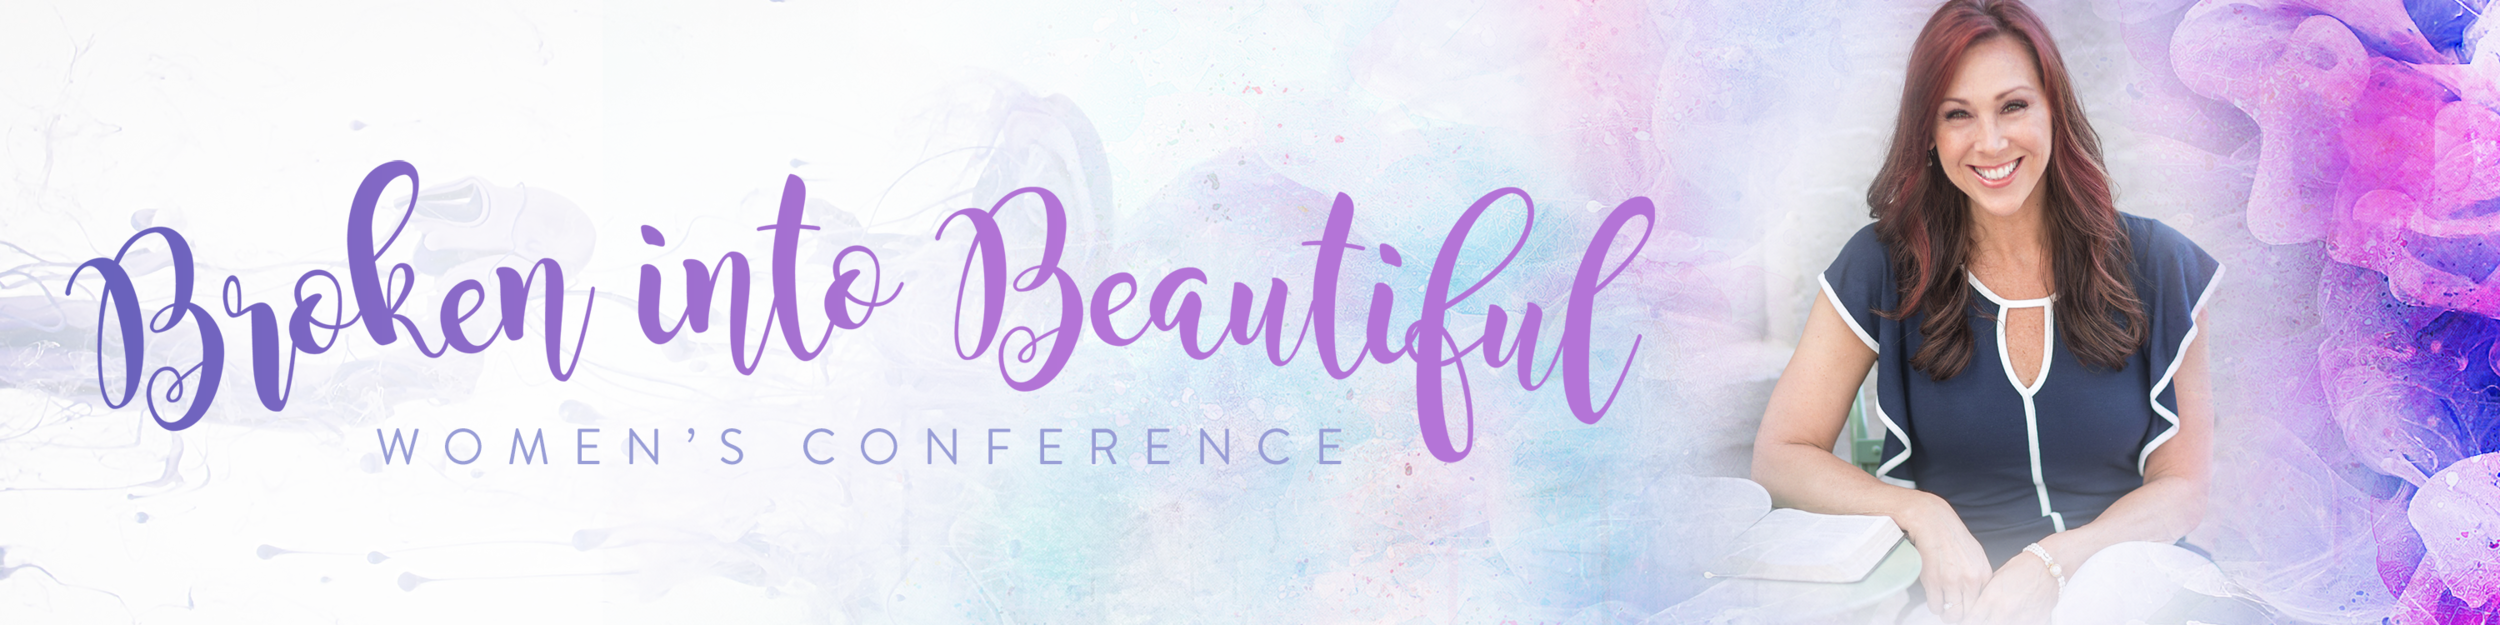 Conference page banner.png